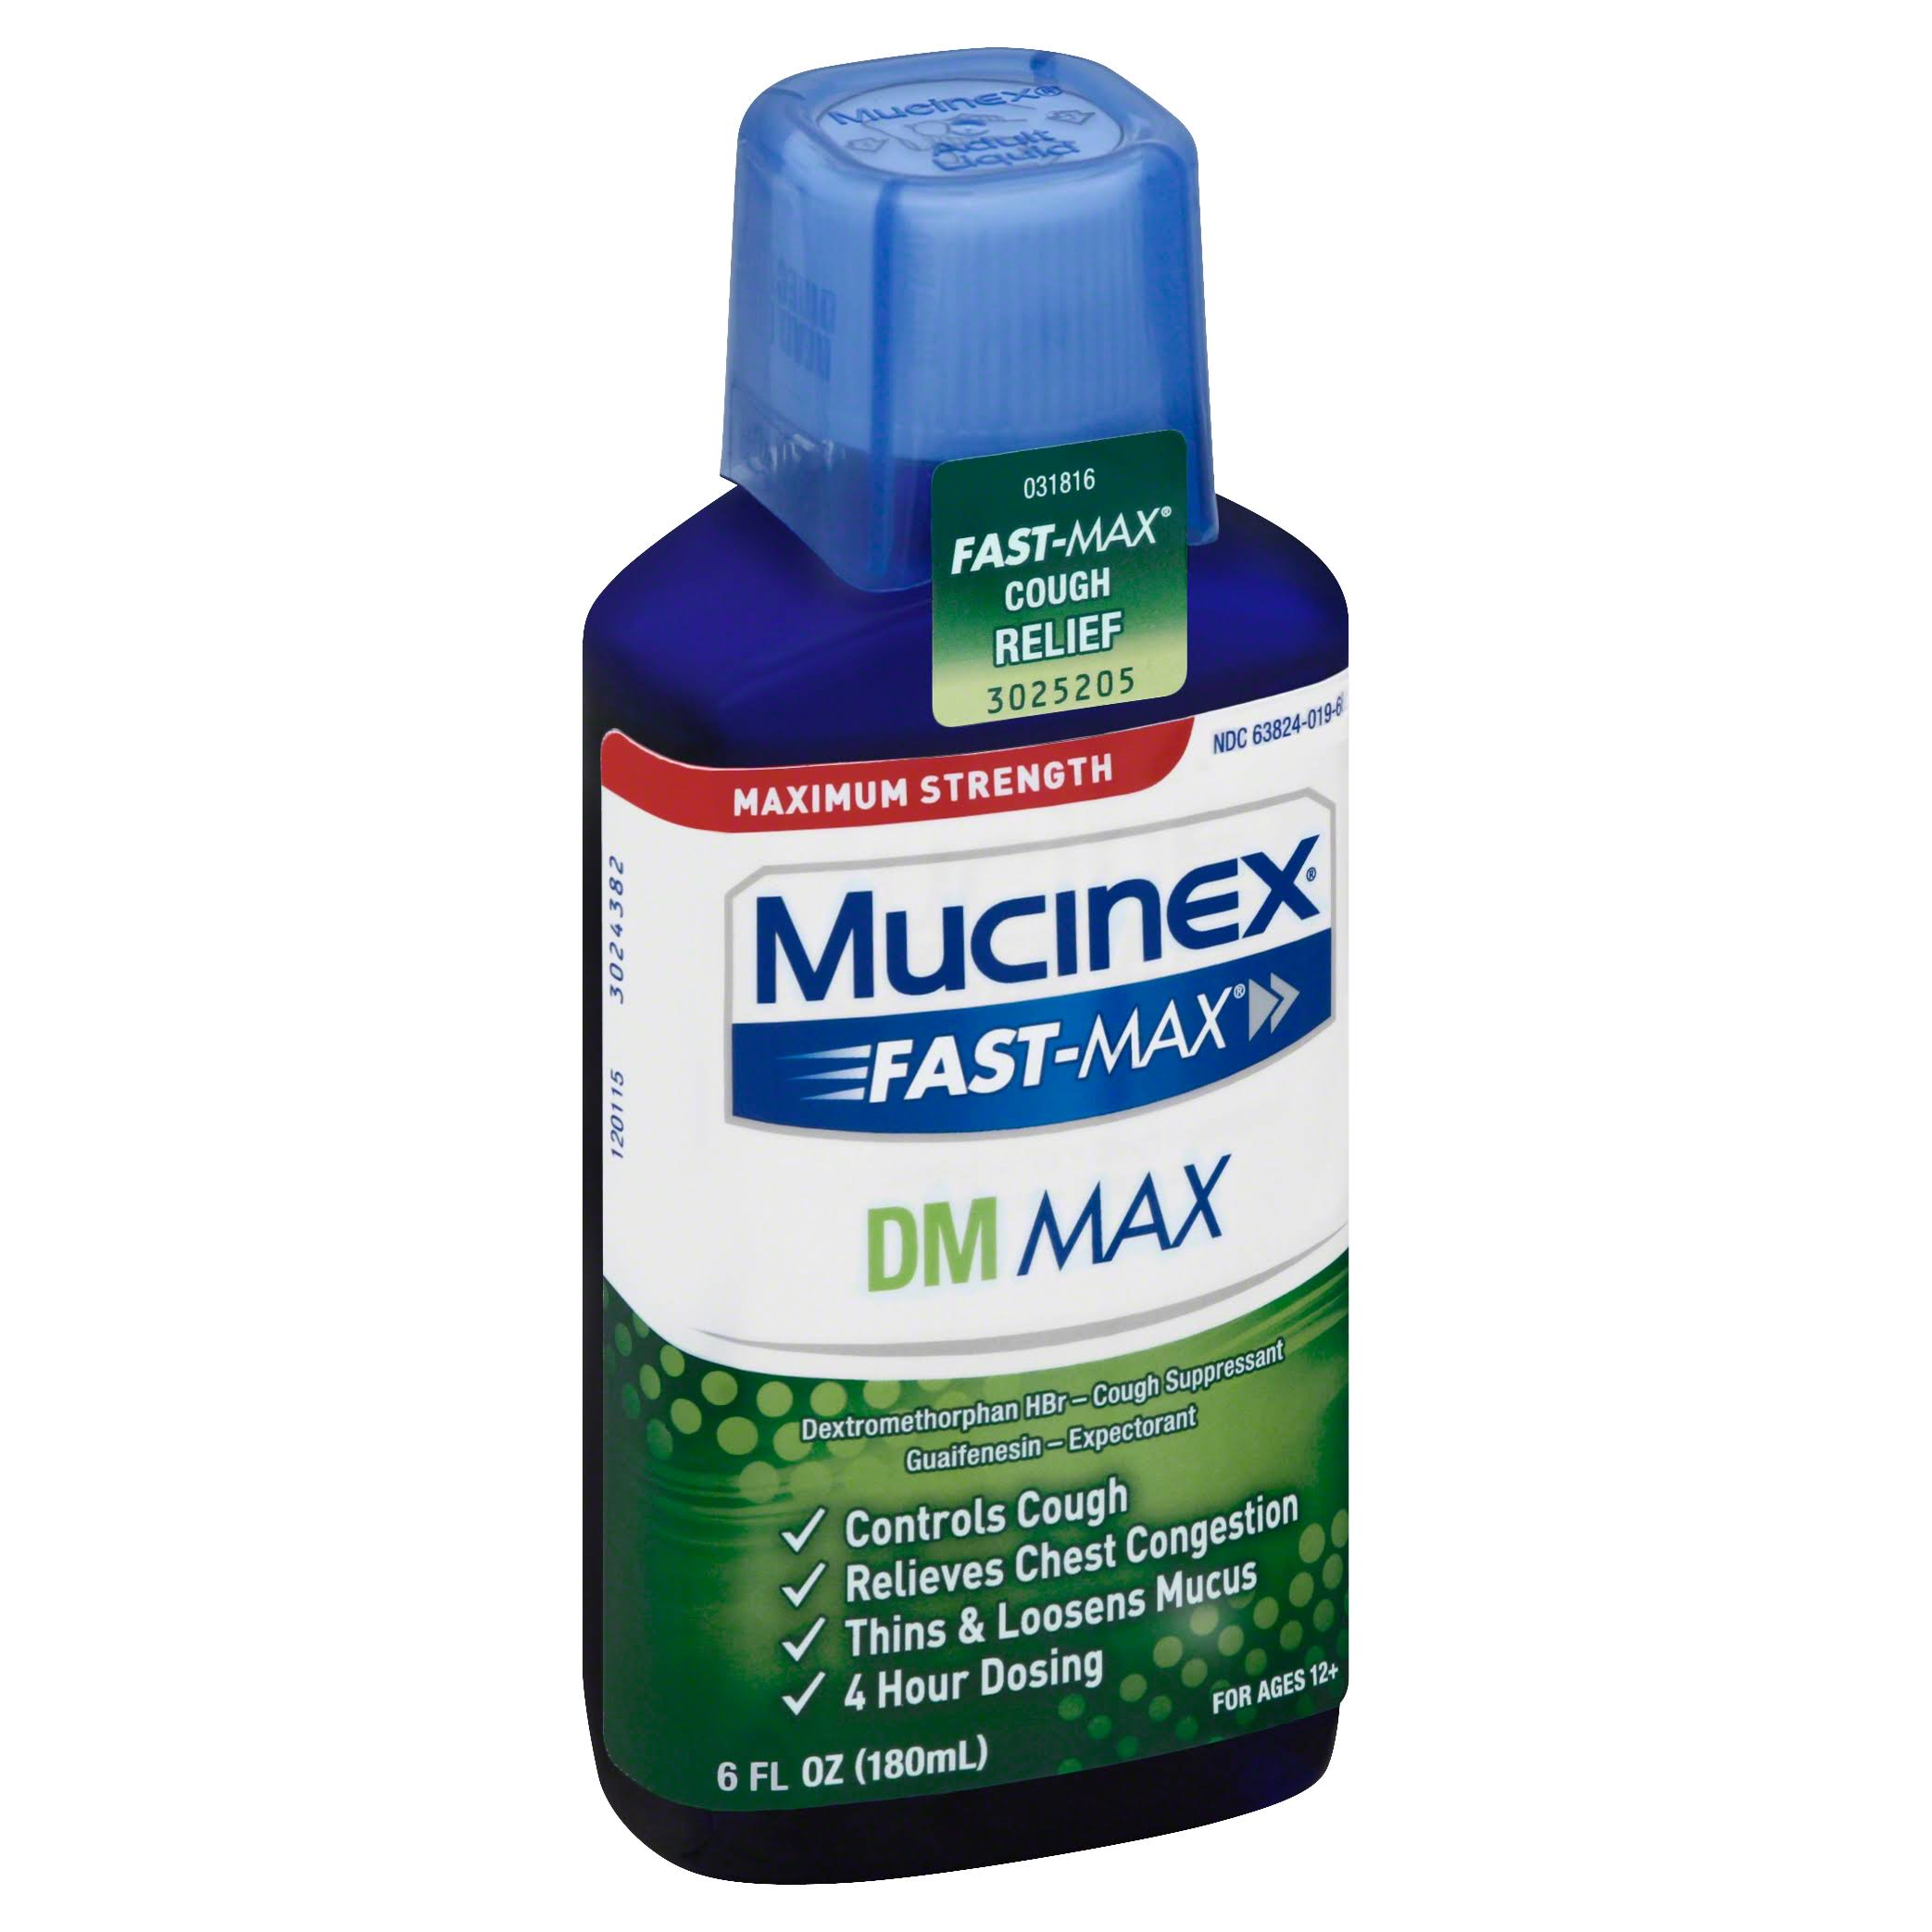 Mucinex Fast-Max Maximum Strength Dm Max Cough Relief - 180ml